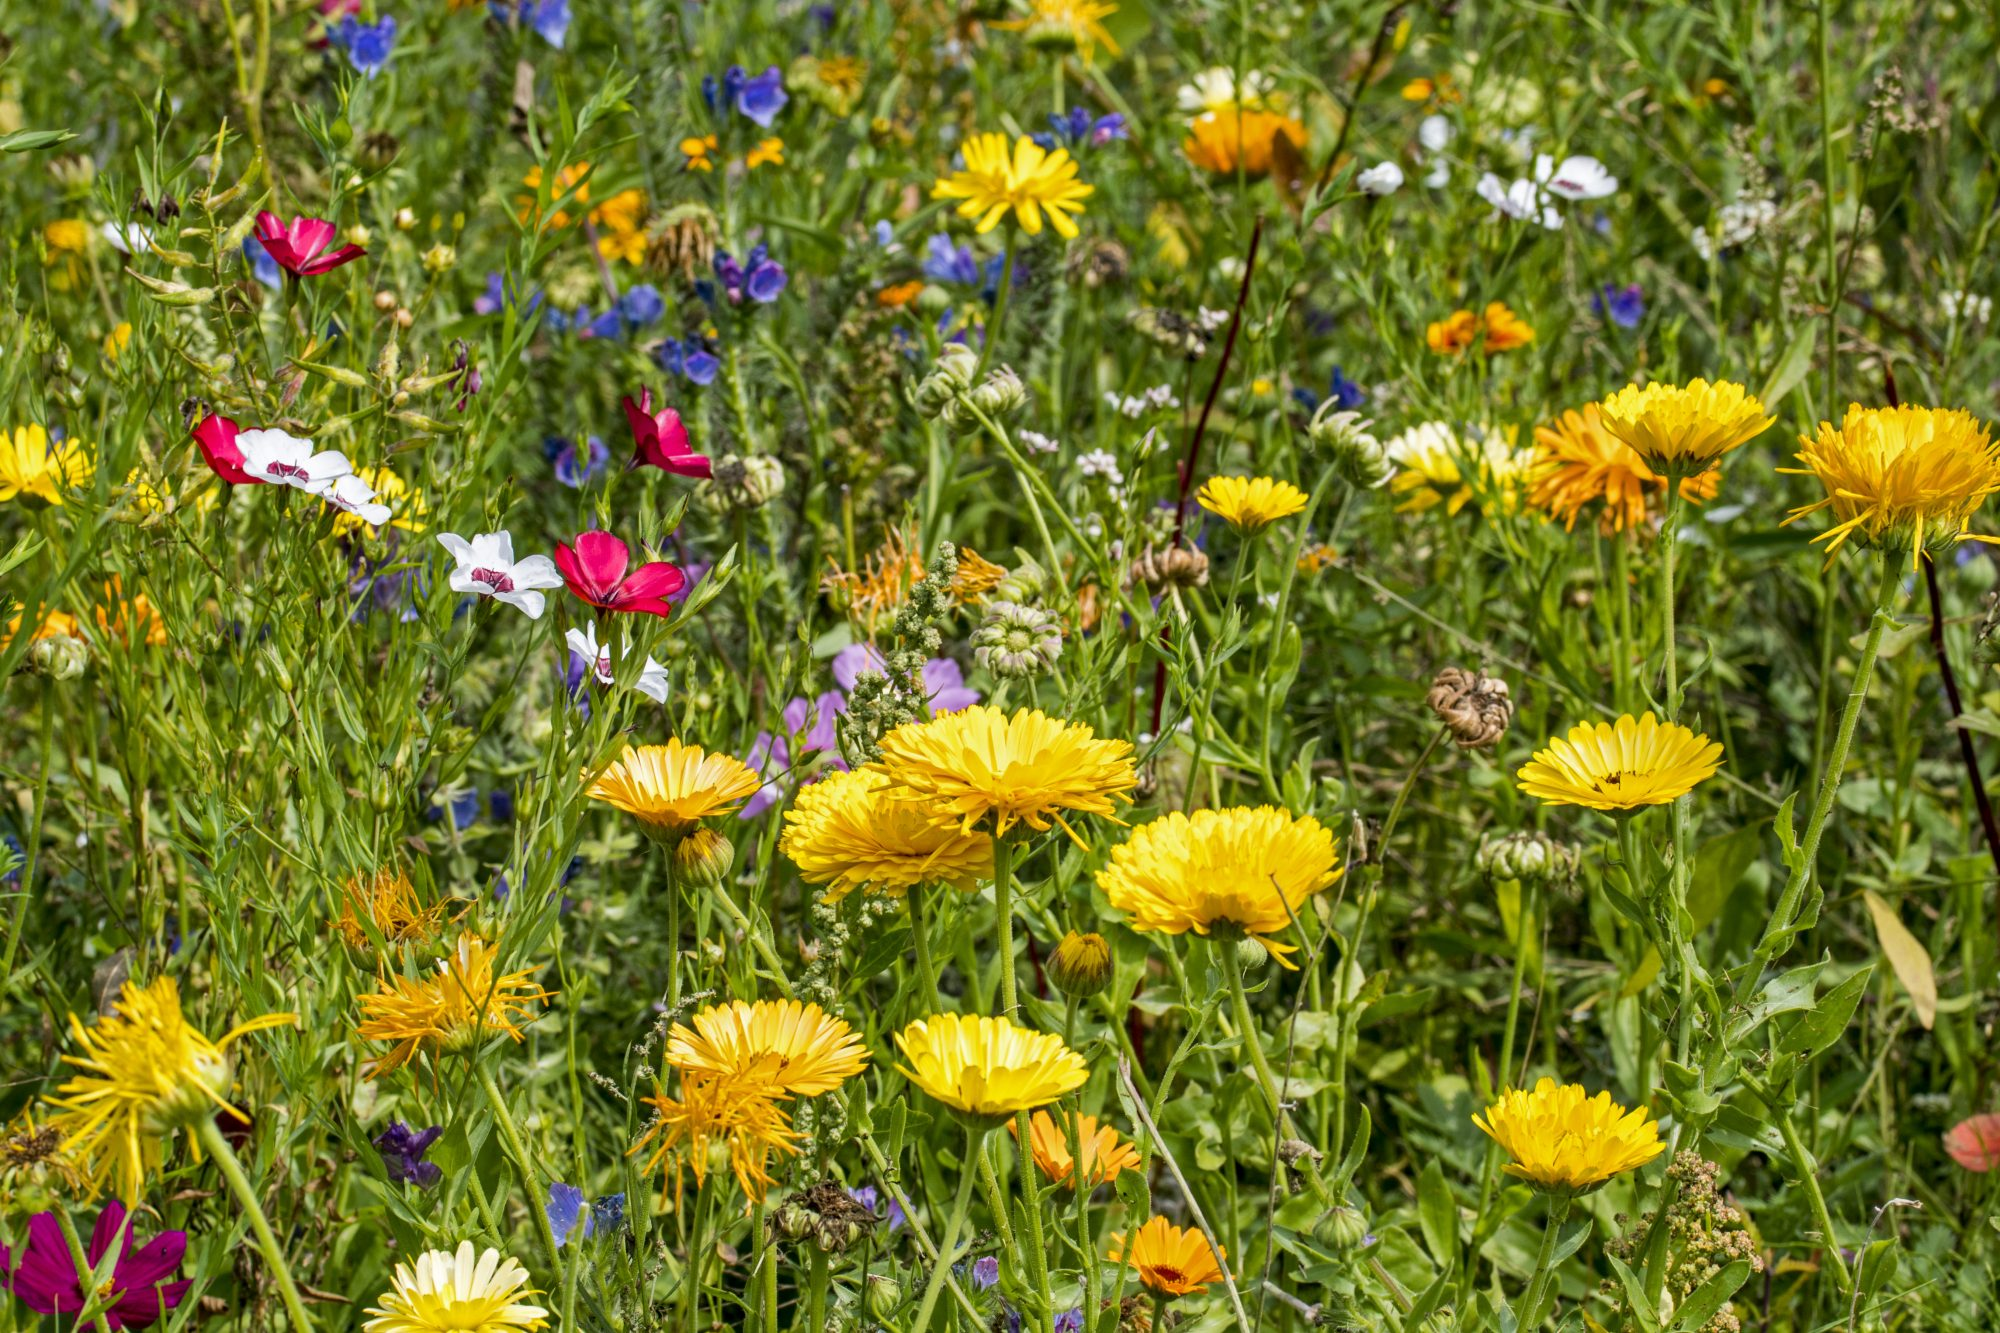 Mixture of colorful wildflowers